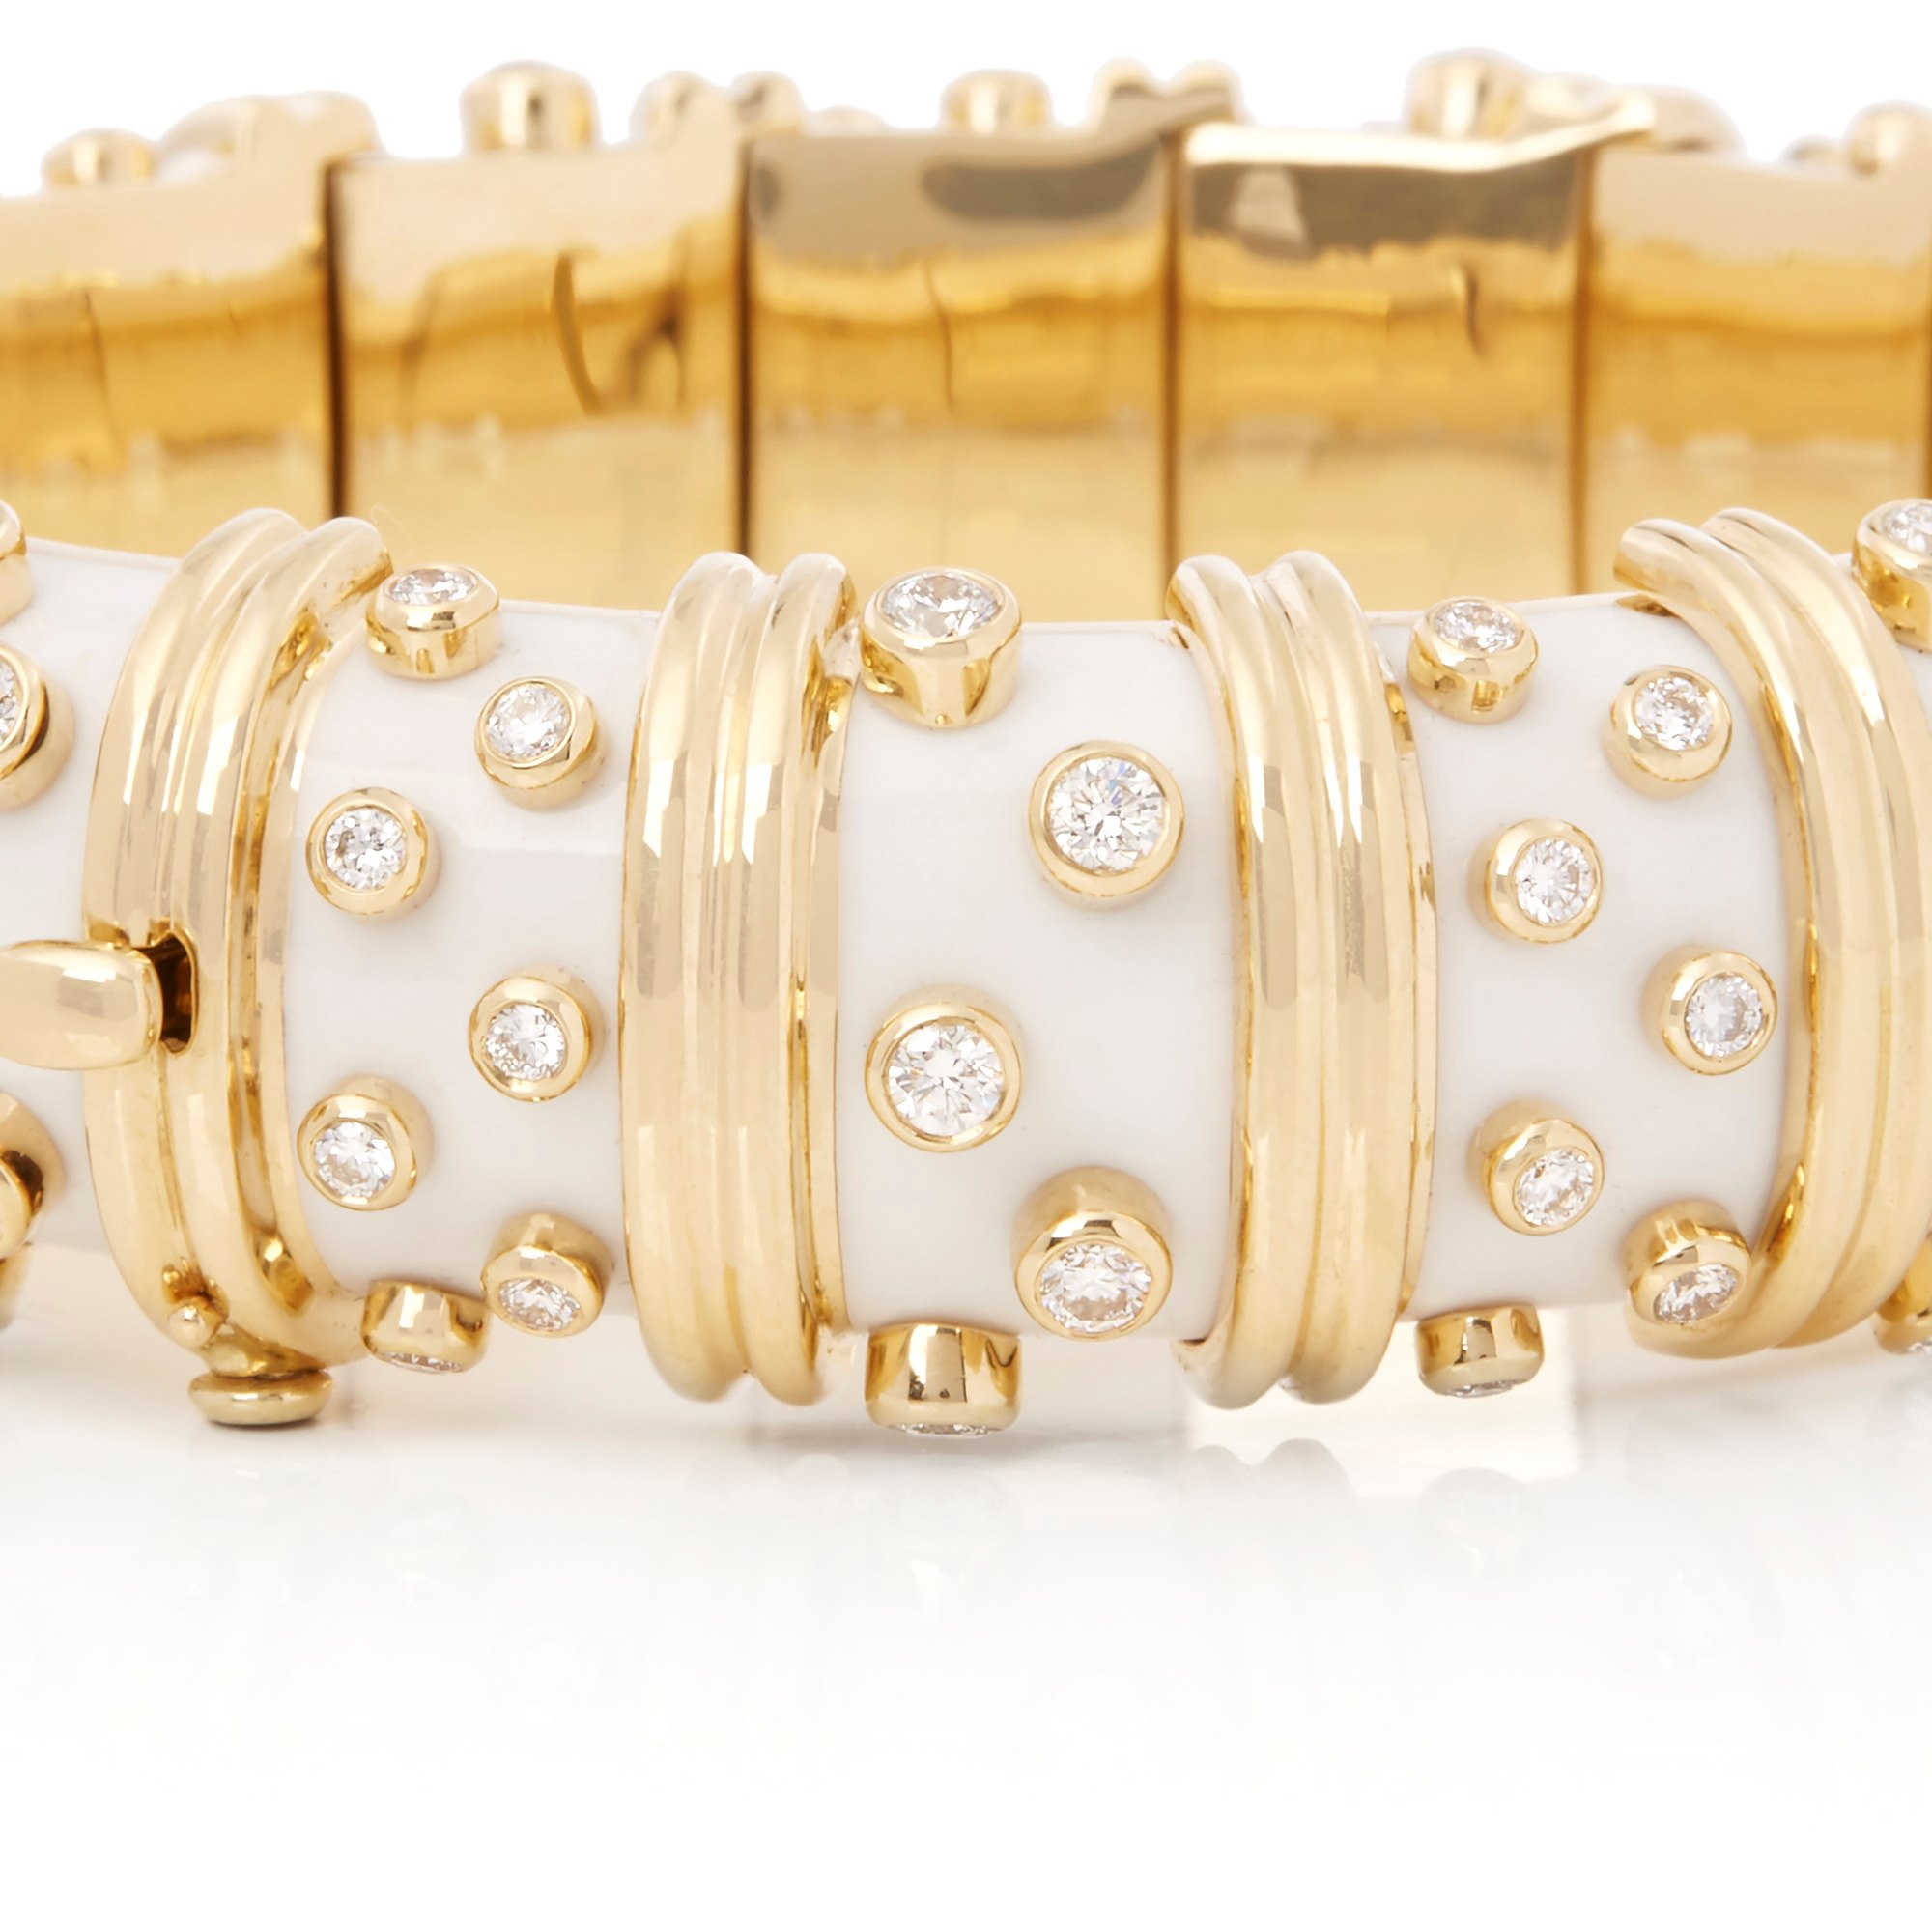 Tiffany & Co. 18k Yellow Gold White Enamel Schlumberger Bracelet